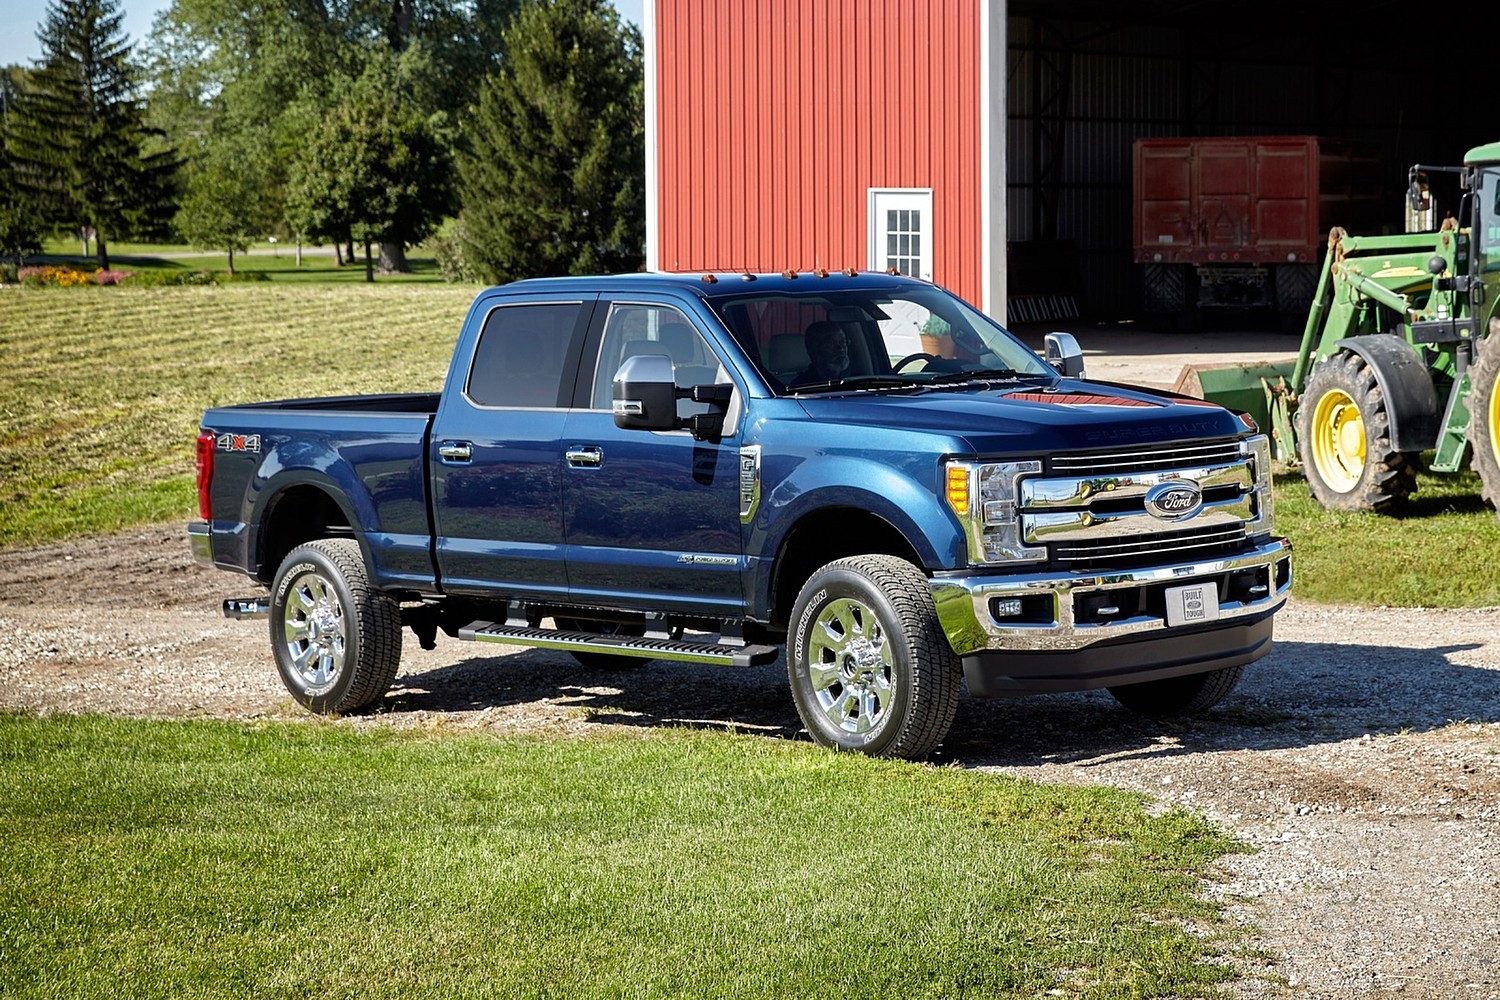 2018 ford f 250 super duty pickup diesel vehie. Black Bedroom Furniture Sets. Home Design Ideas